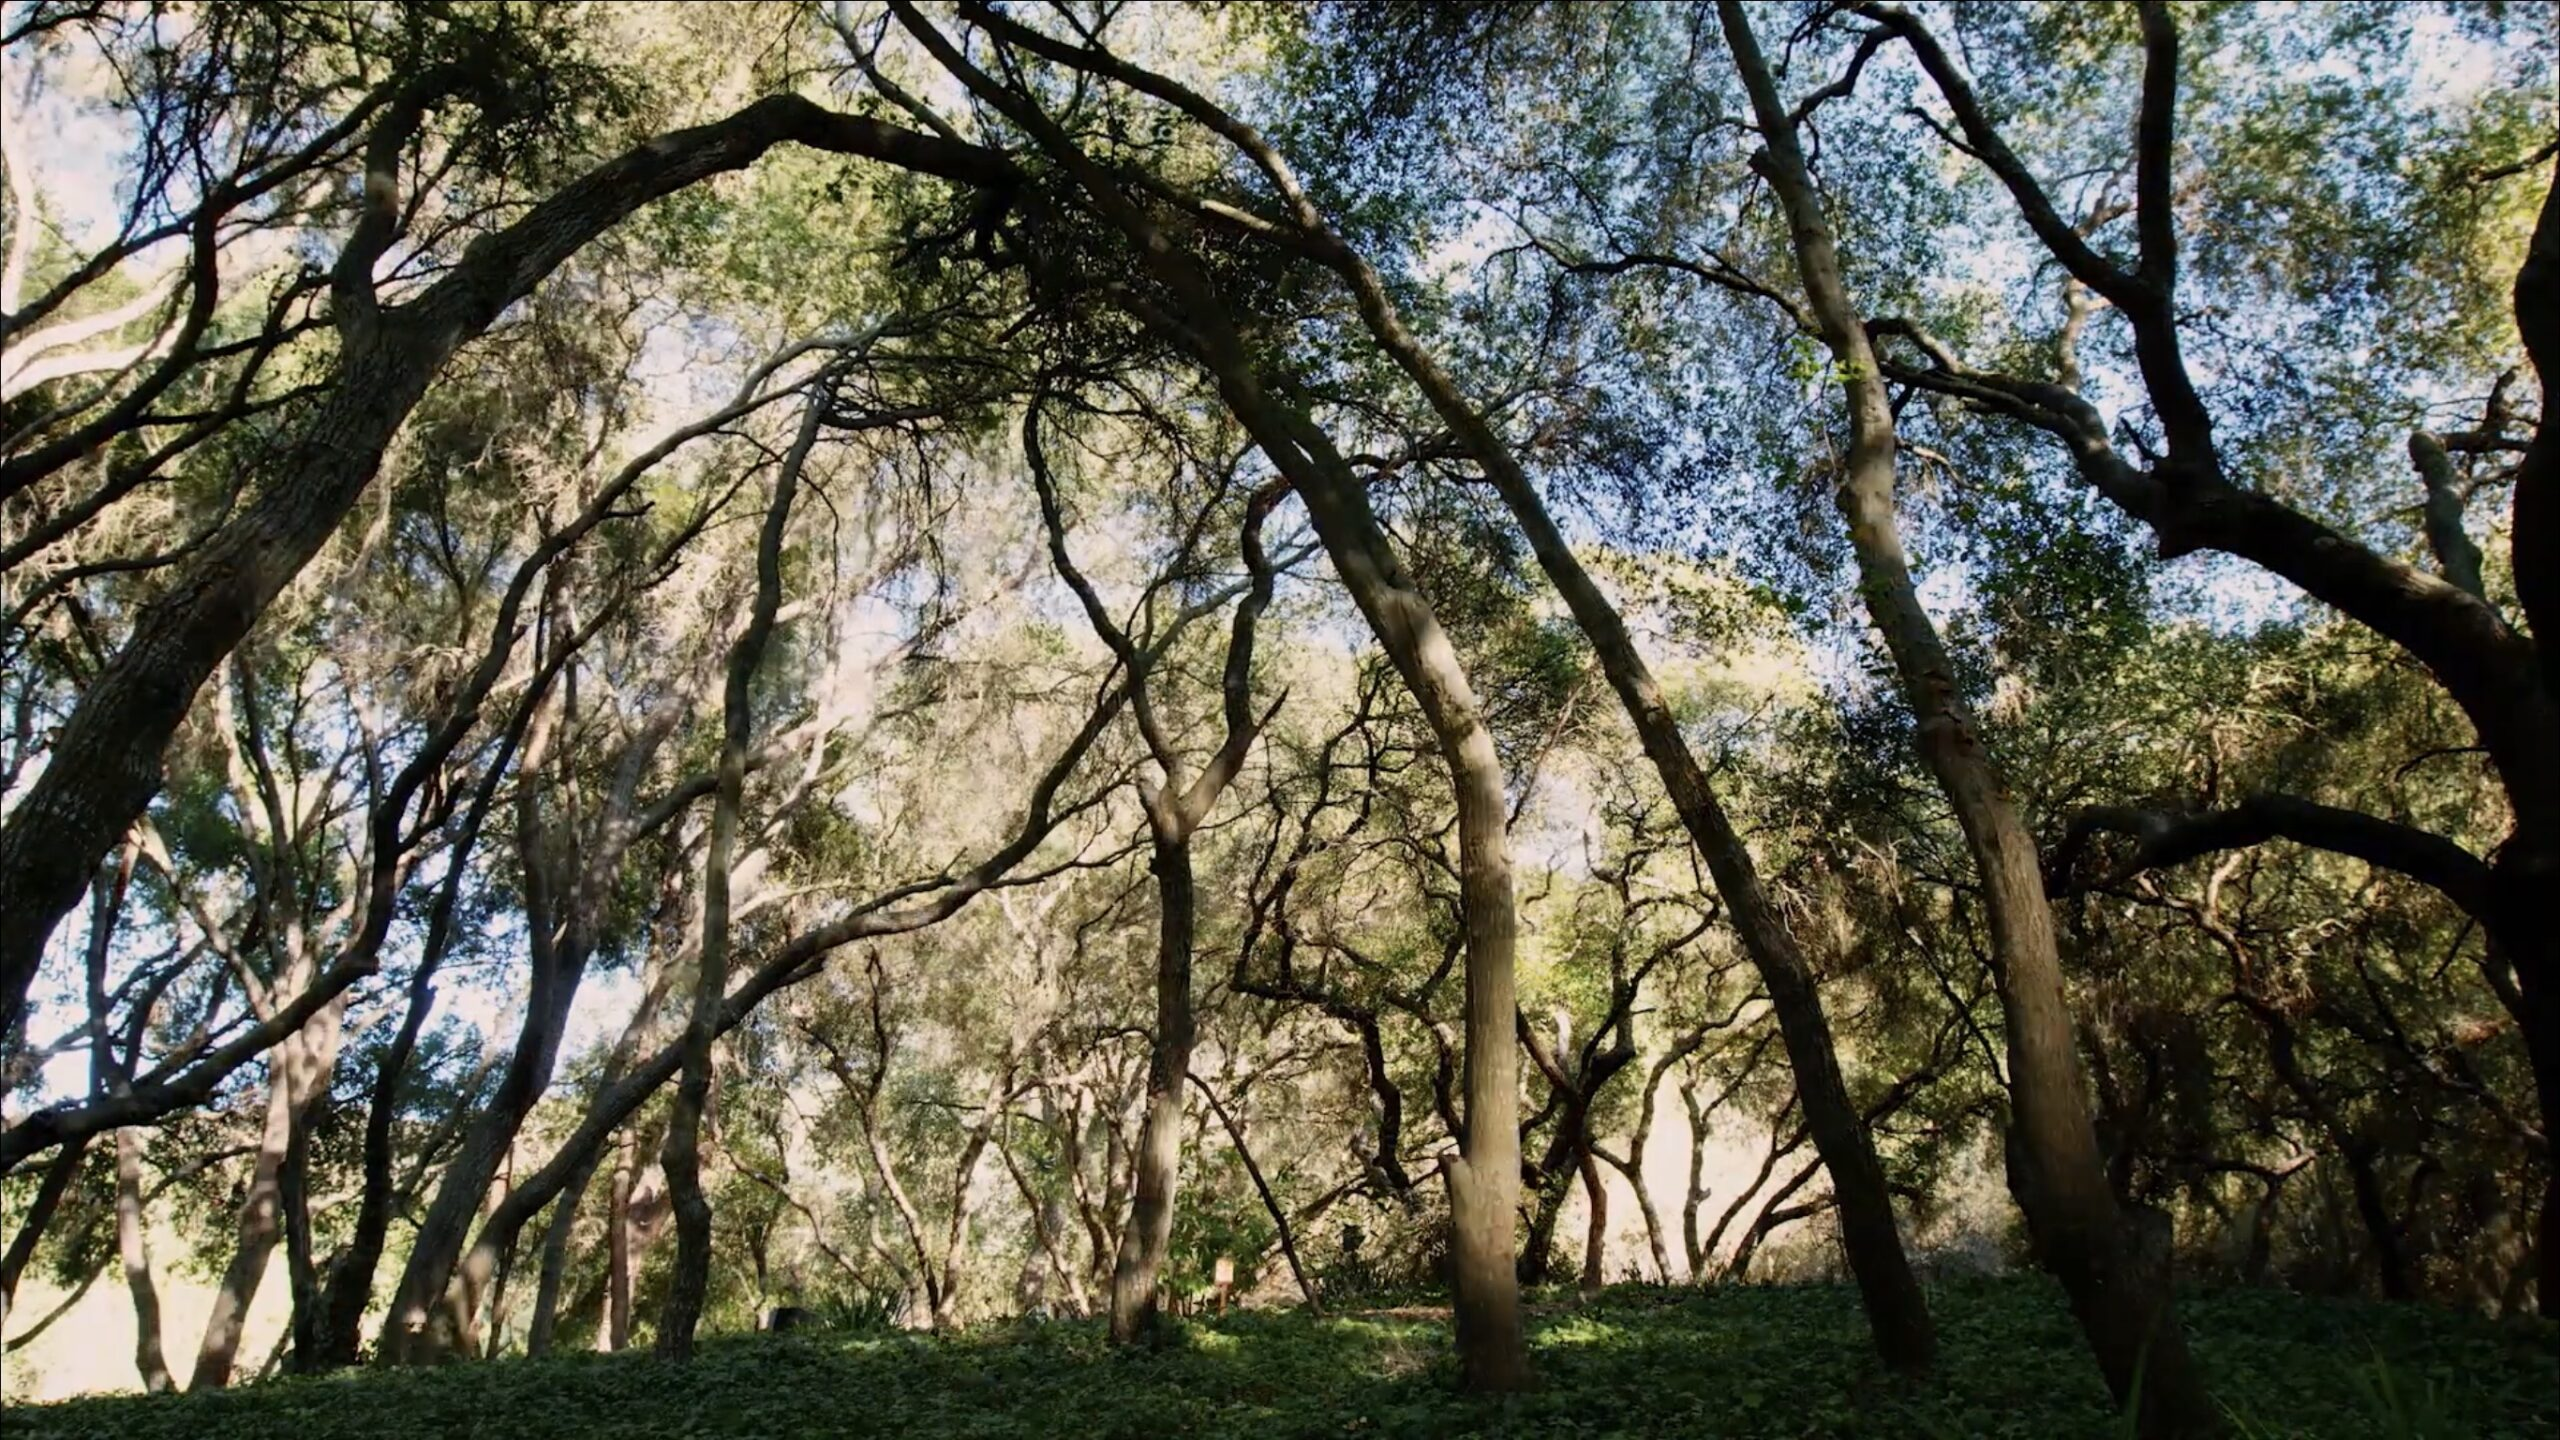 John Muir knew that living among the trees can impact your life better. While getting back to nature, have you ever payed attention to forest shadows?